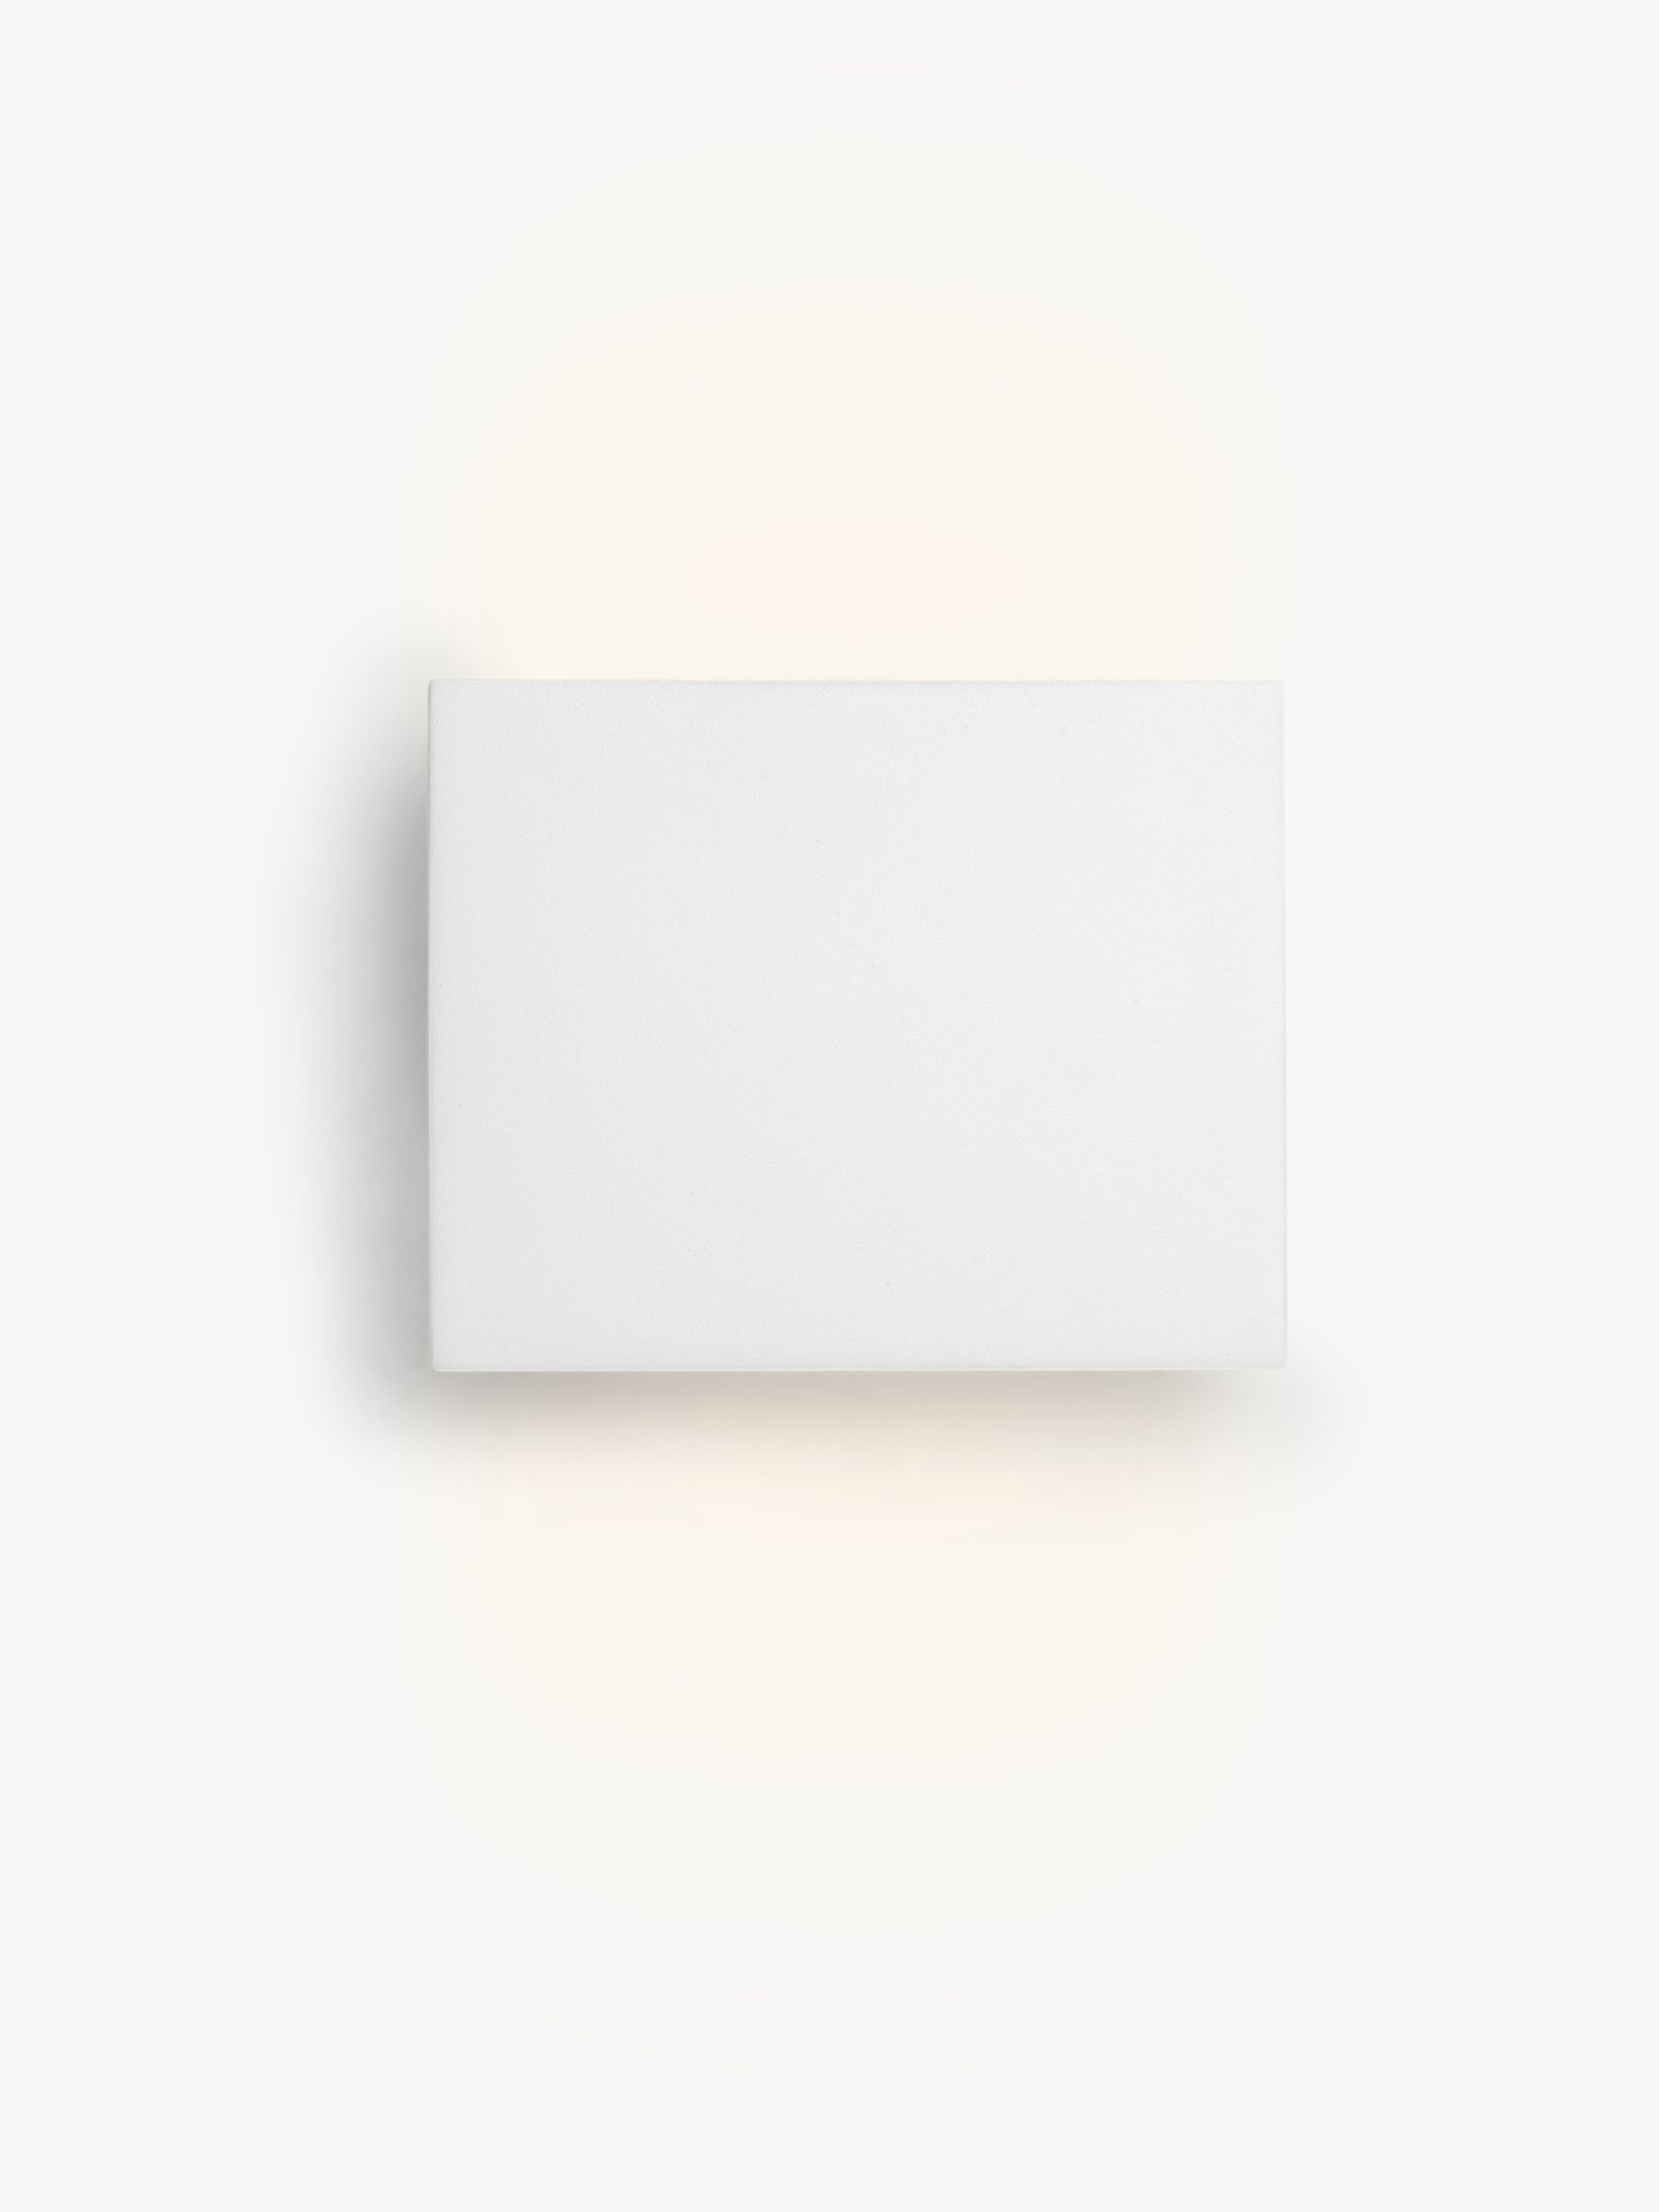 Wall Mounted Lights John Lewis : Buy Flos Tight Uplighter/Downlighter Wall Light, White John Lewis